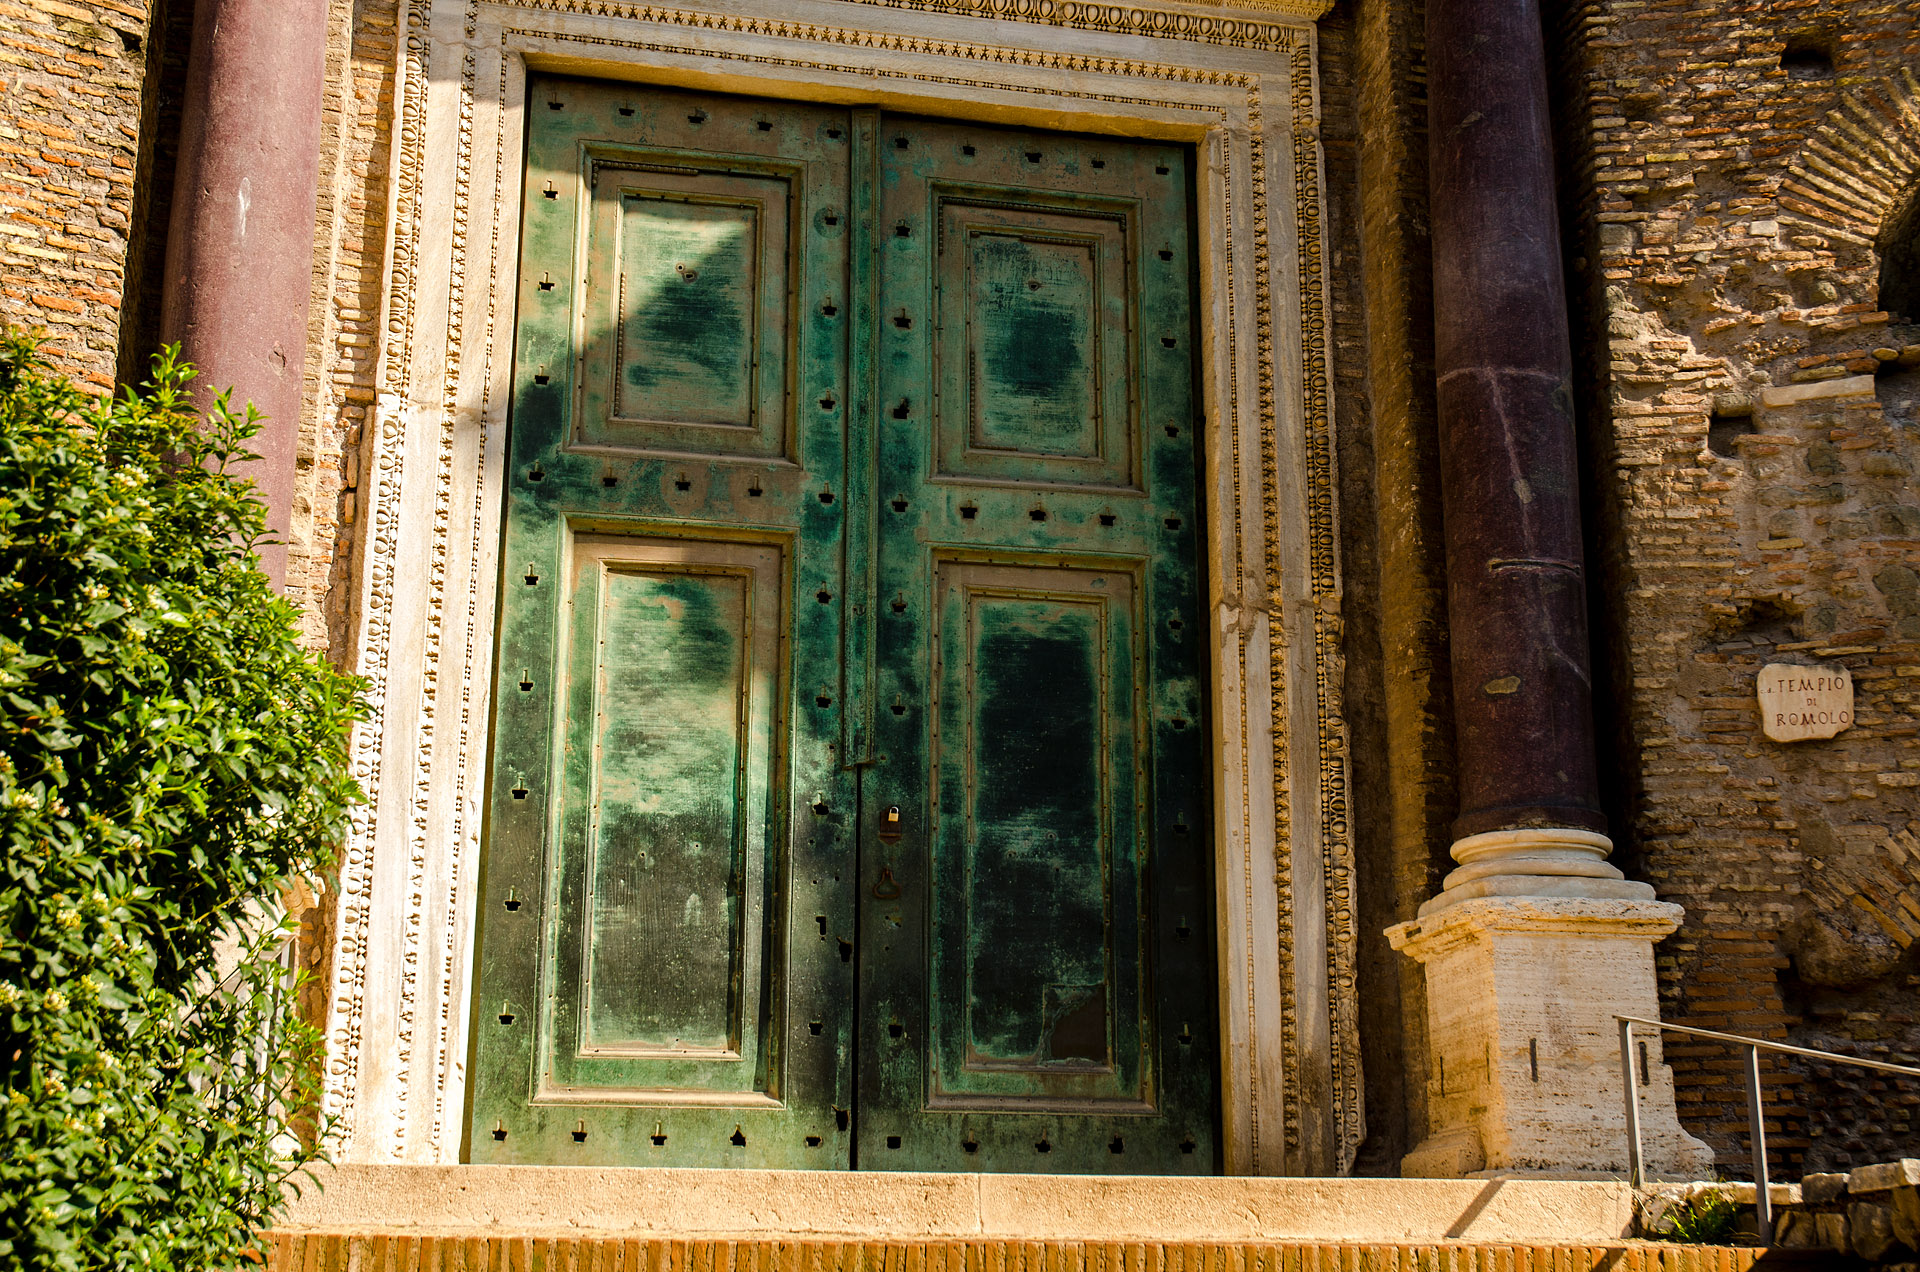 Original bronze doors (Temple of Romulus)